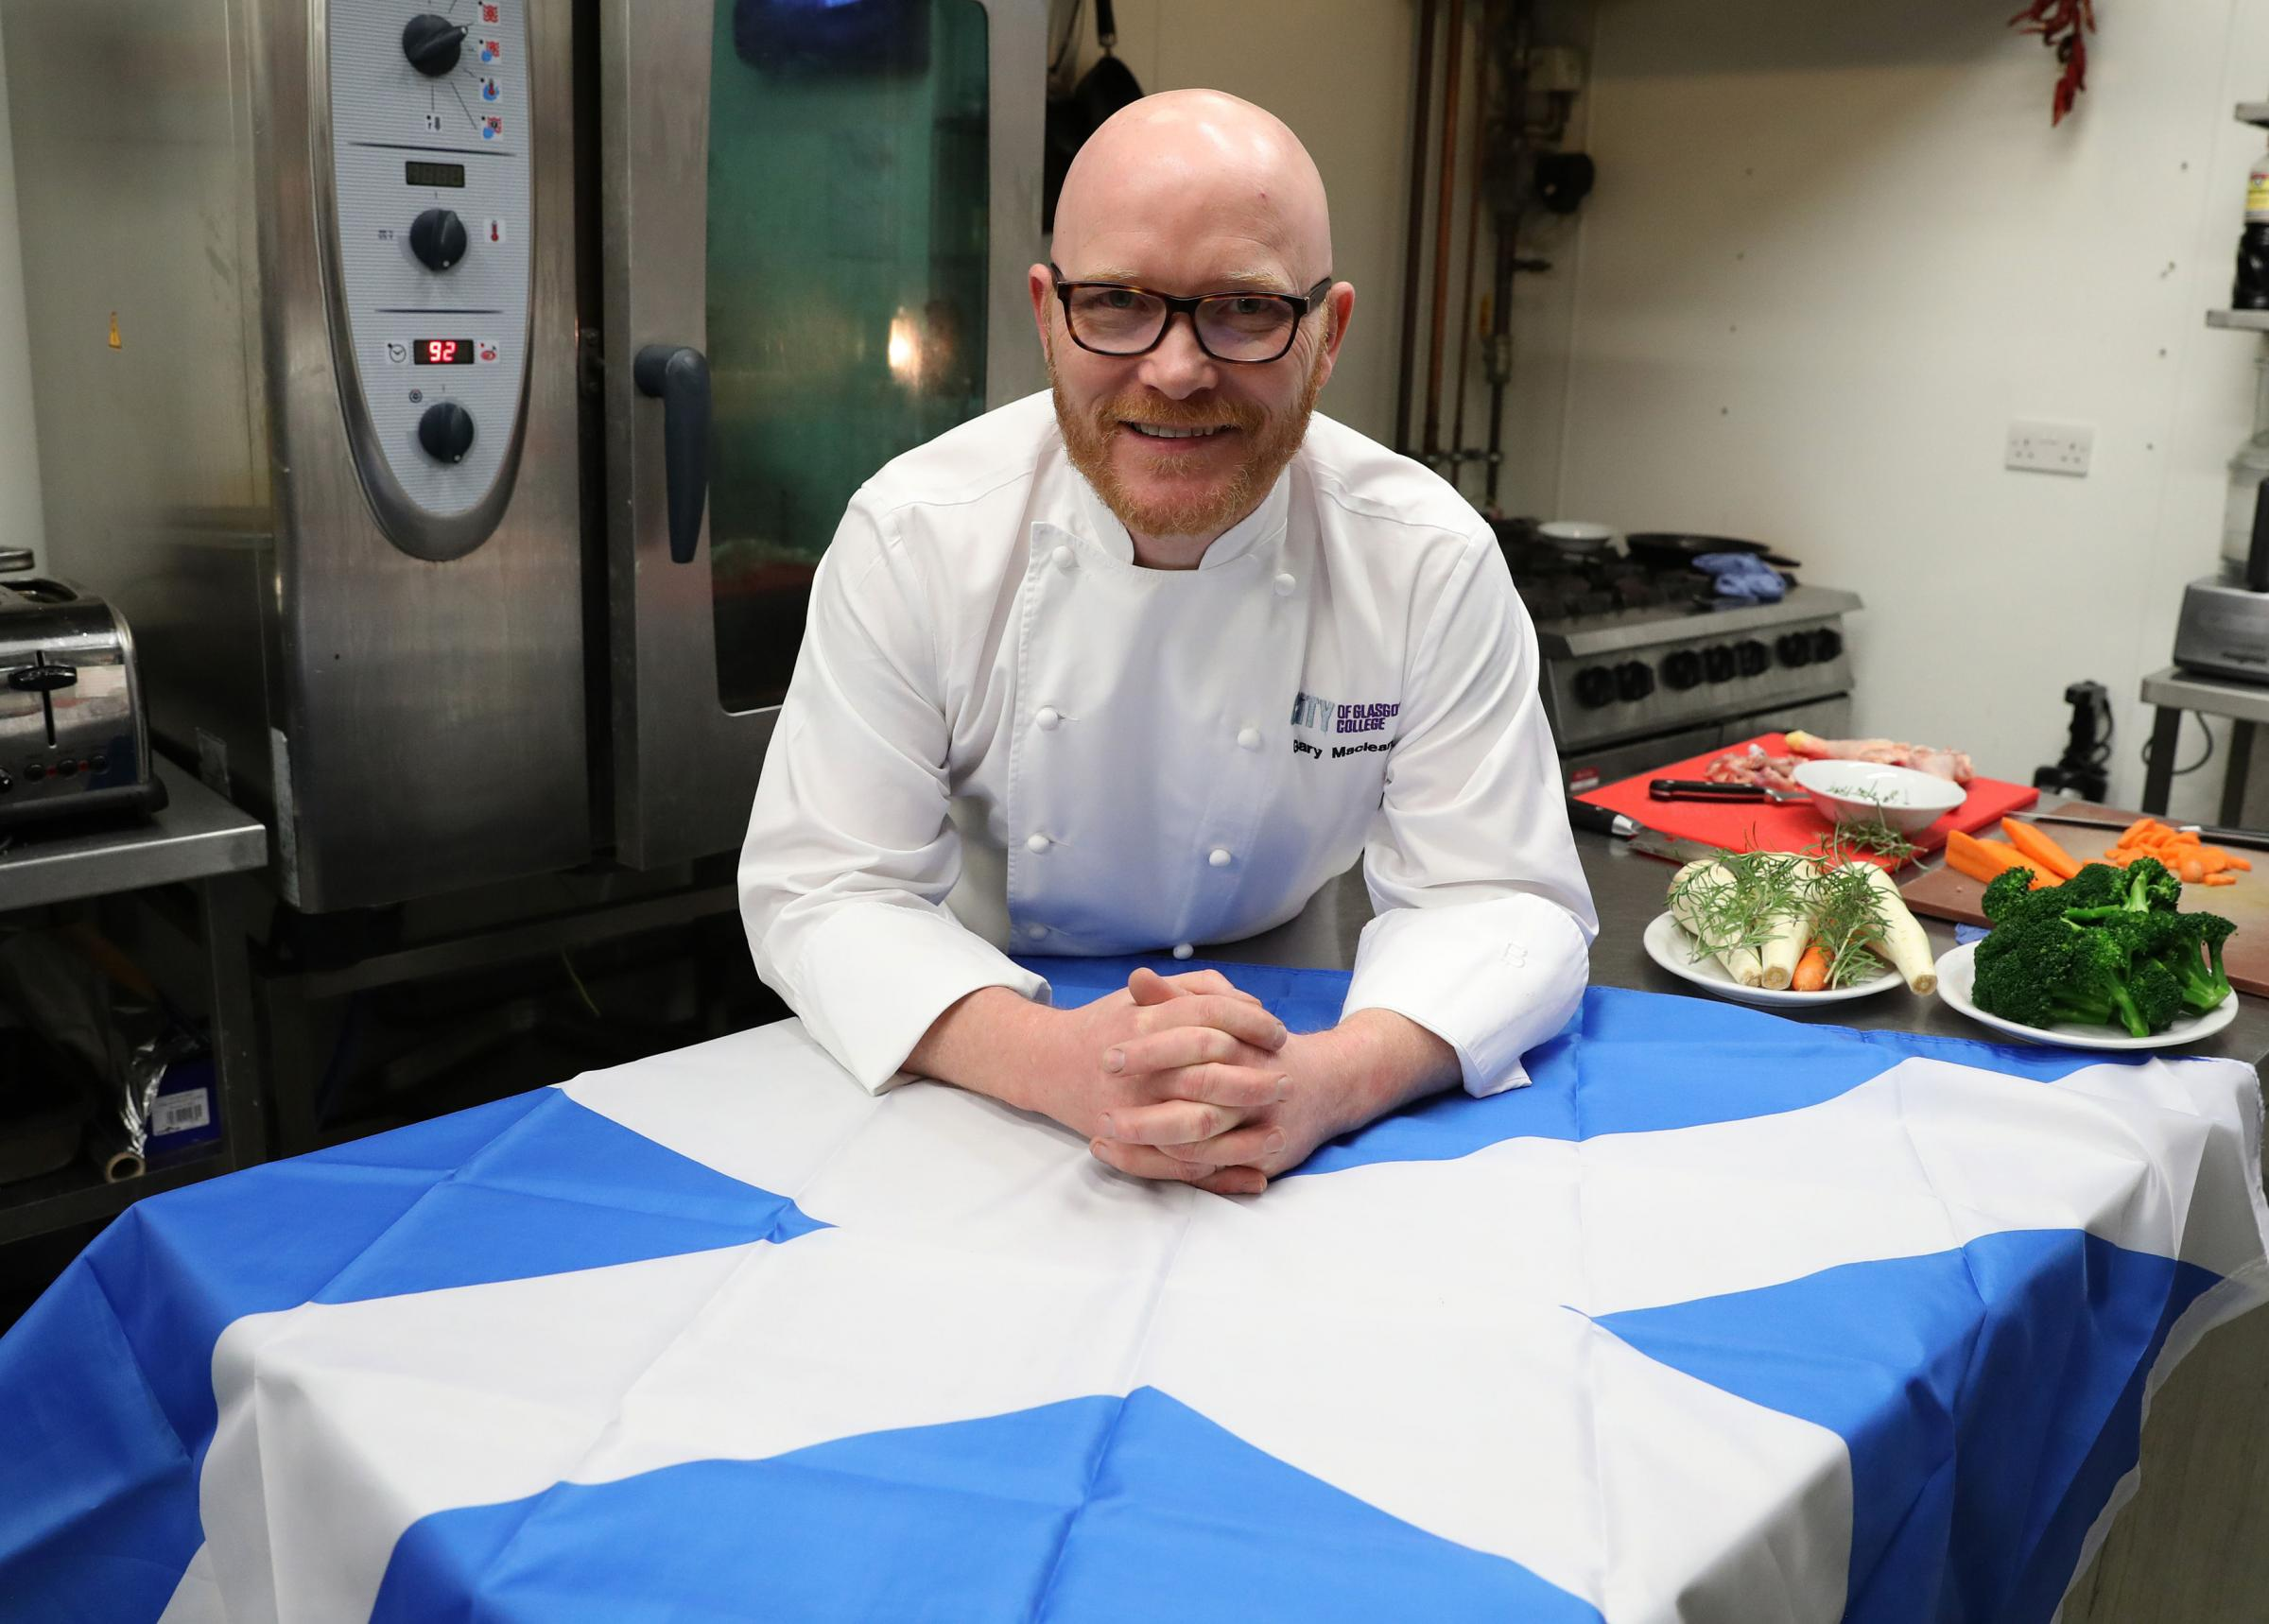 Gary Maclean who has been named Scotland's first National Chef by the Scottish Government